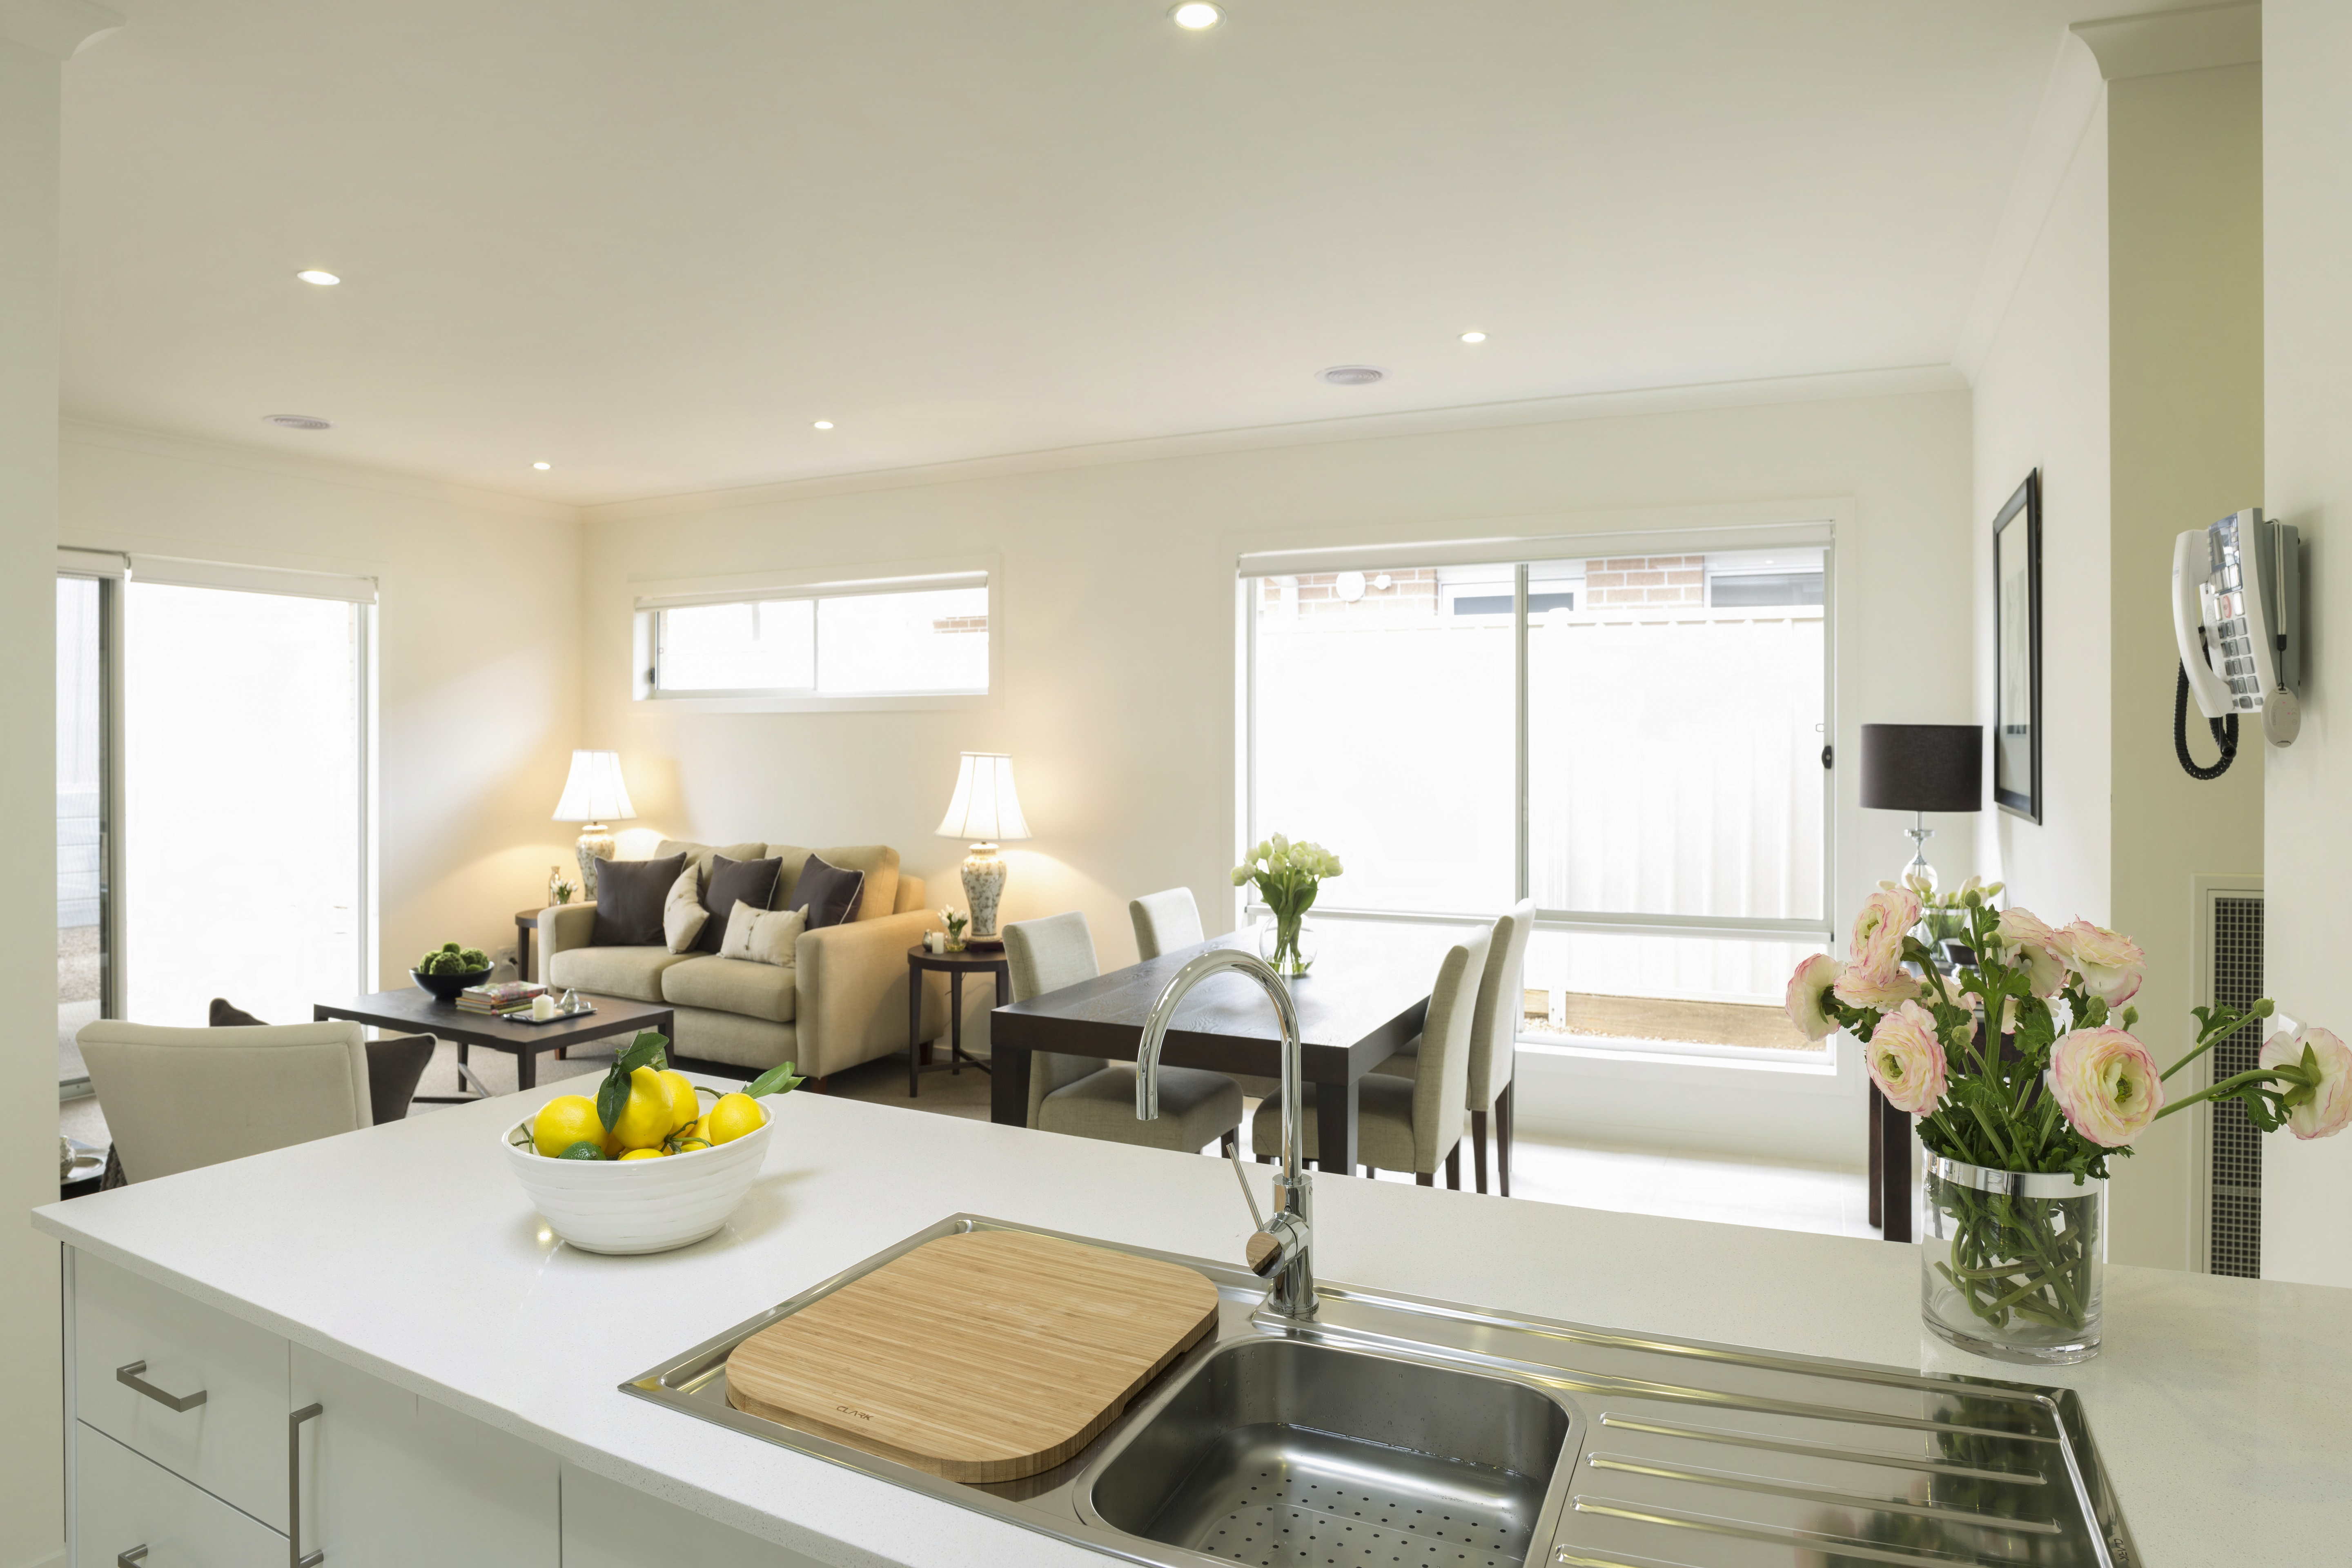 Mernda Retirement Living Villa Study 2 Bed 1.5 Bath 1 Car